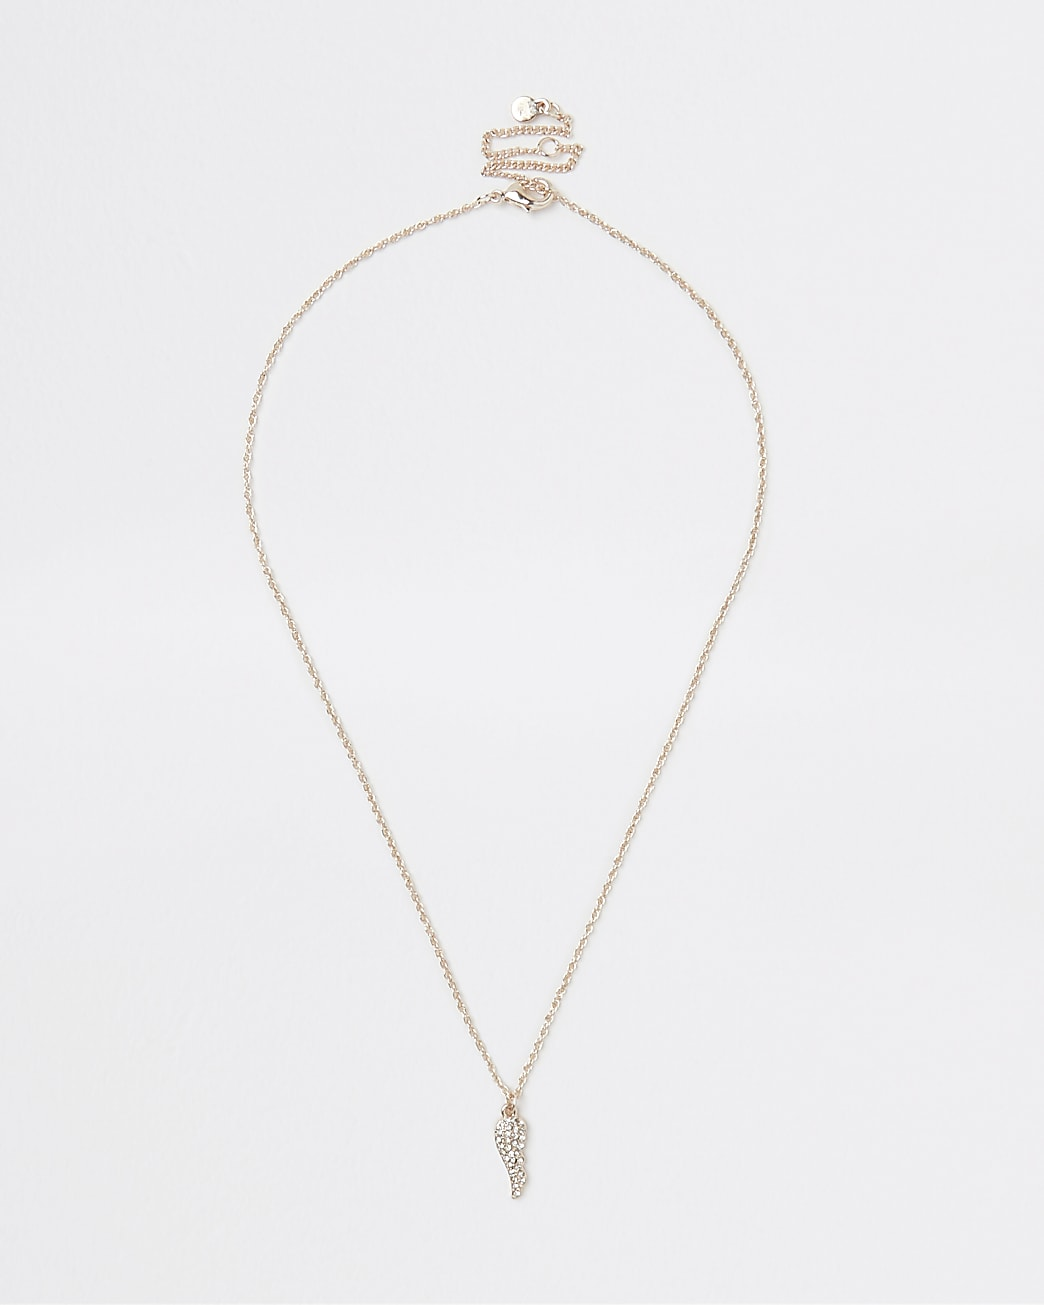 Gold wing pendant necklace